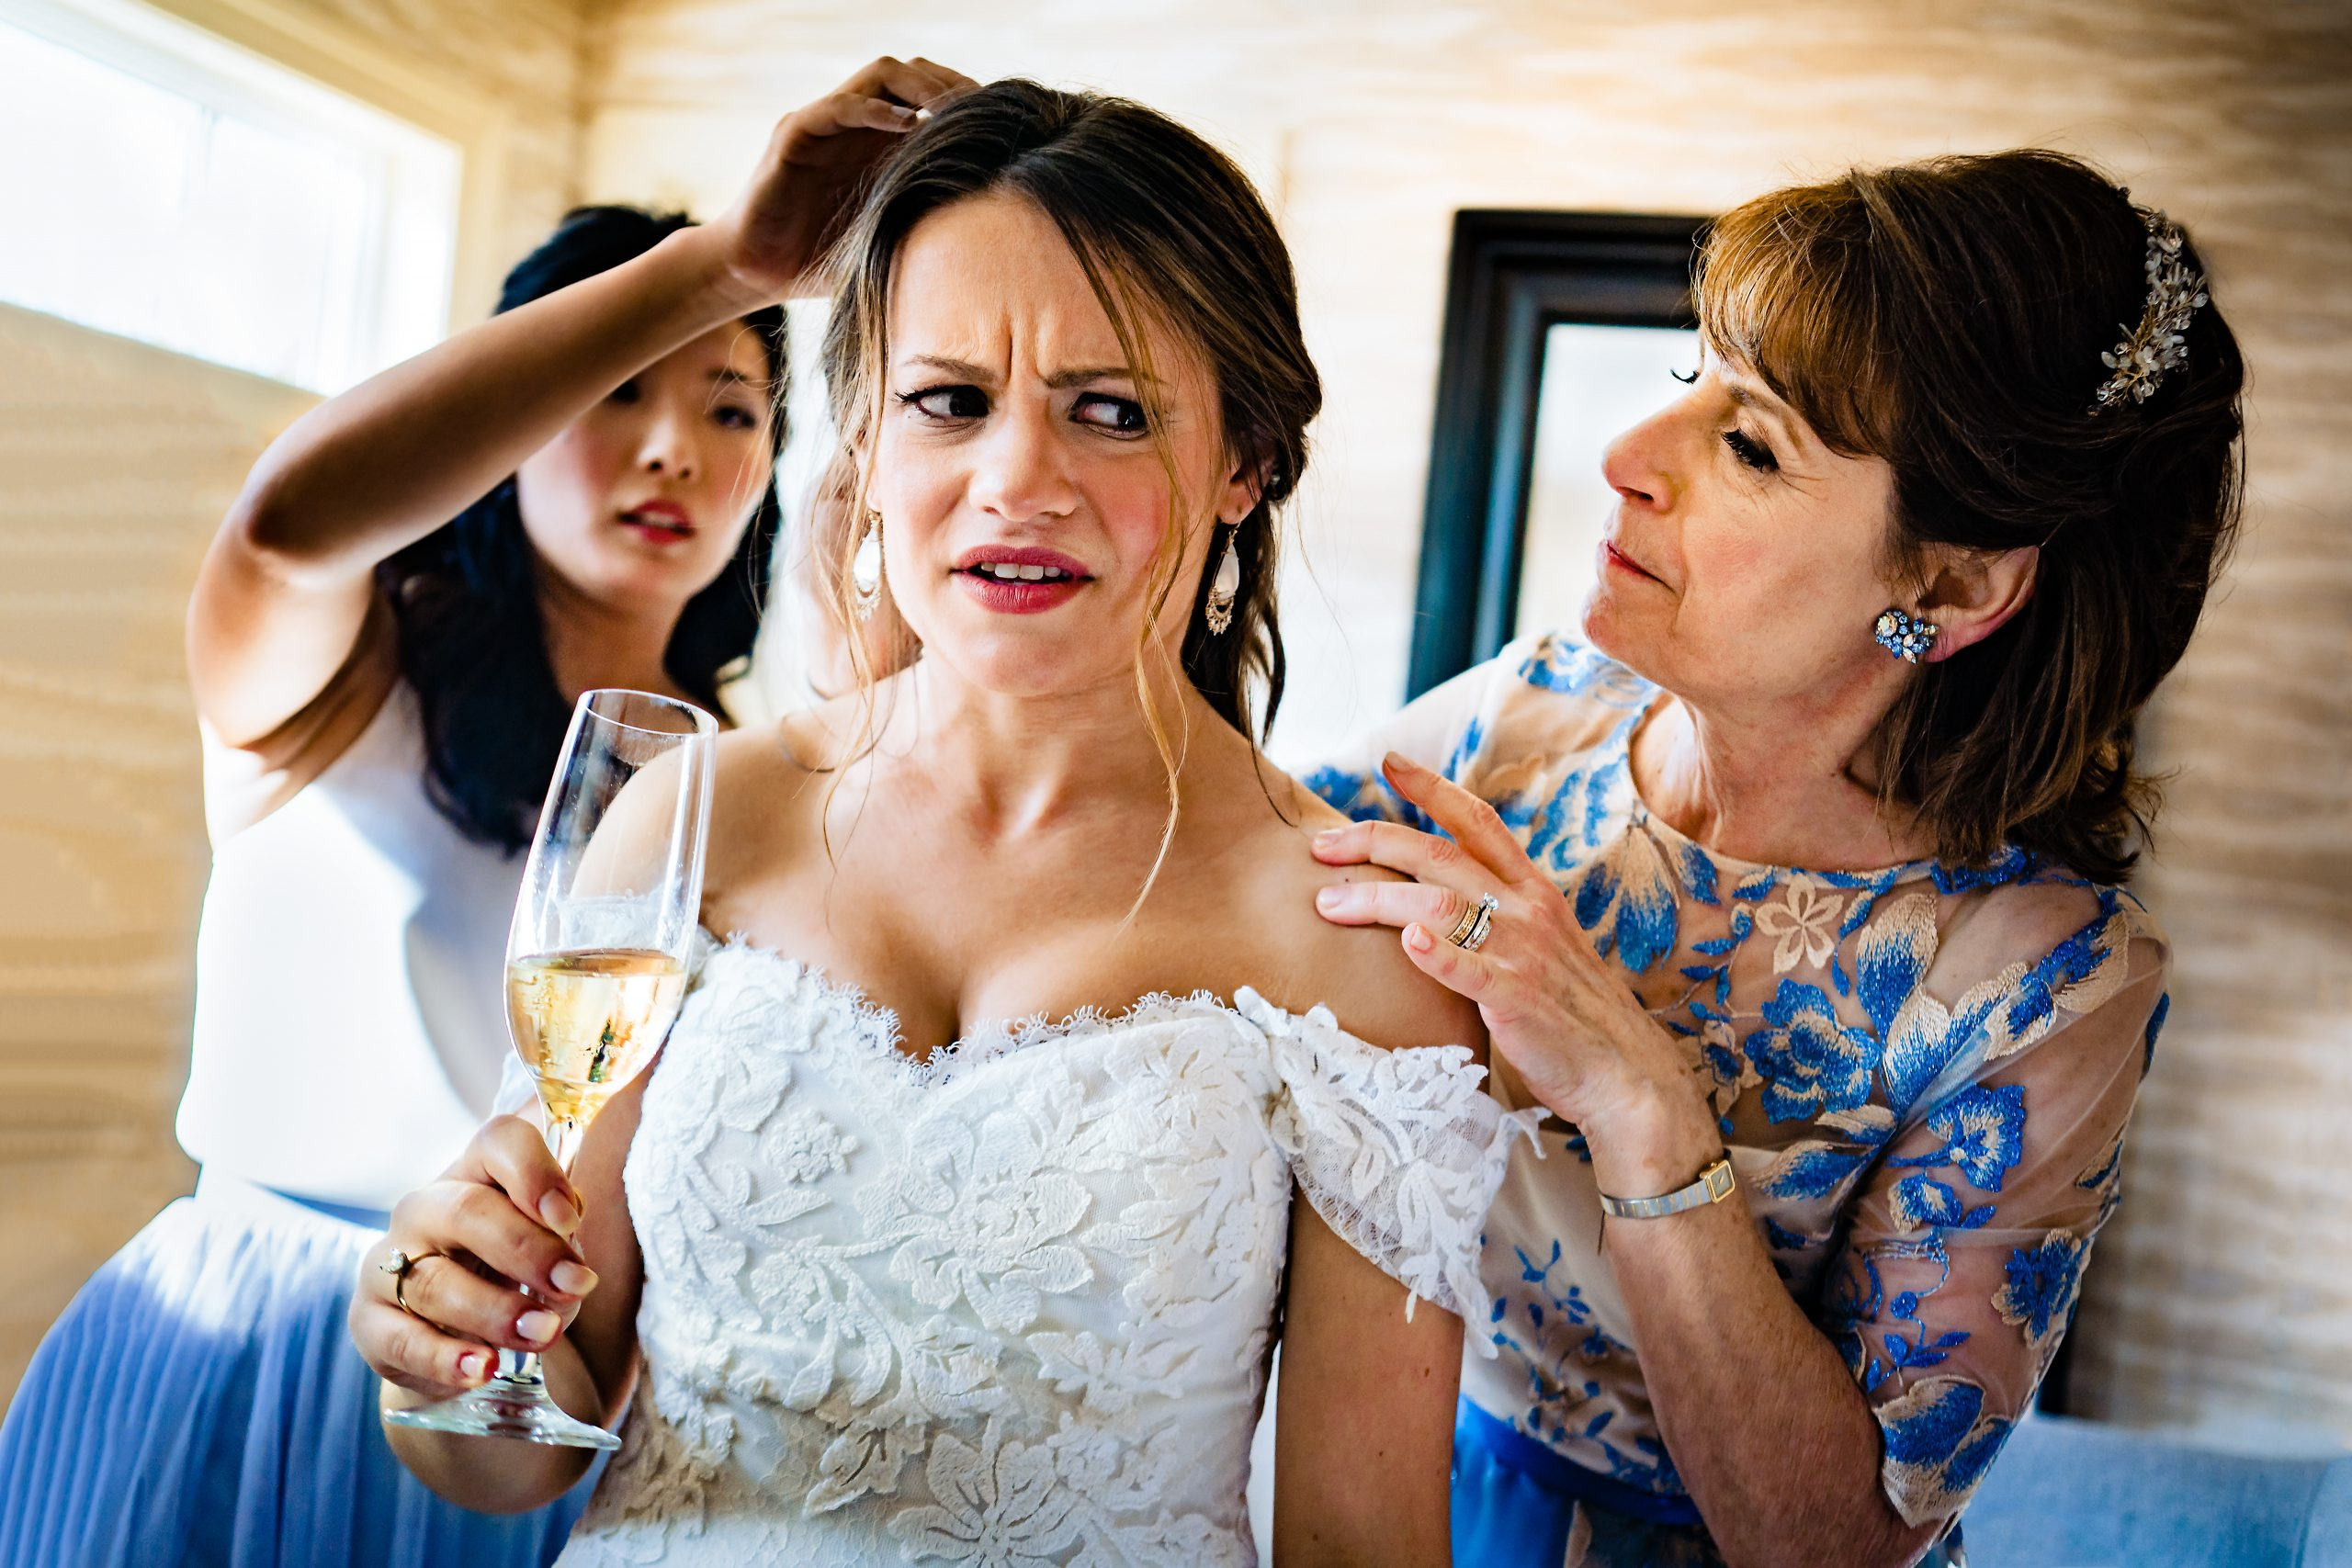 Bridesmaid and the bride's mother fix the bride's hair while she holds a flute of Champagne